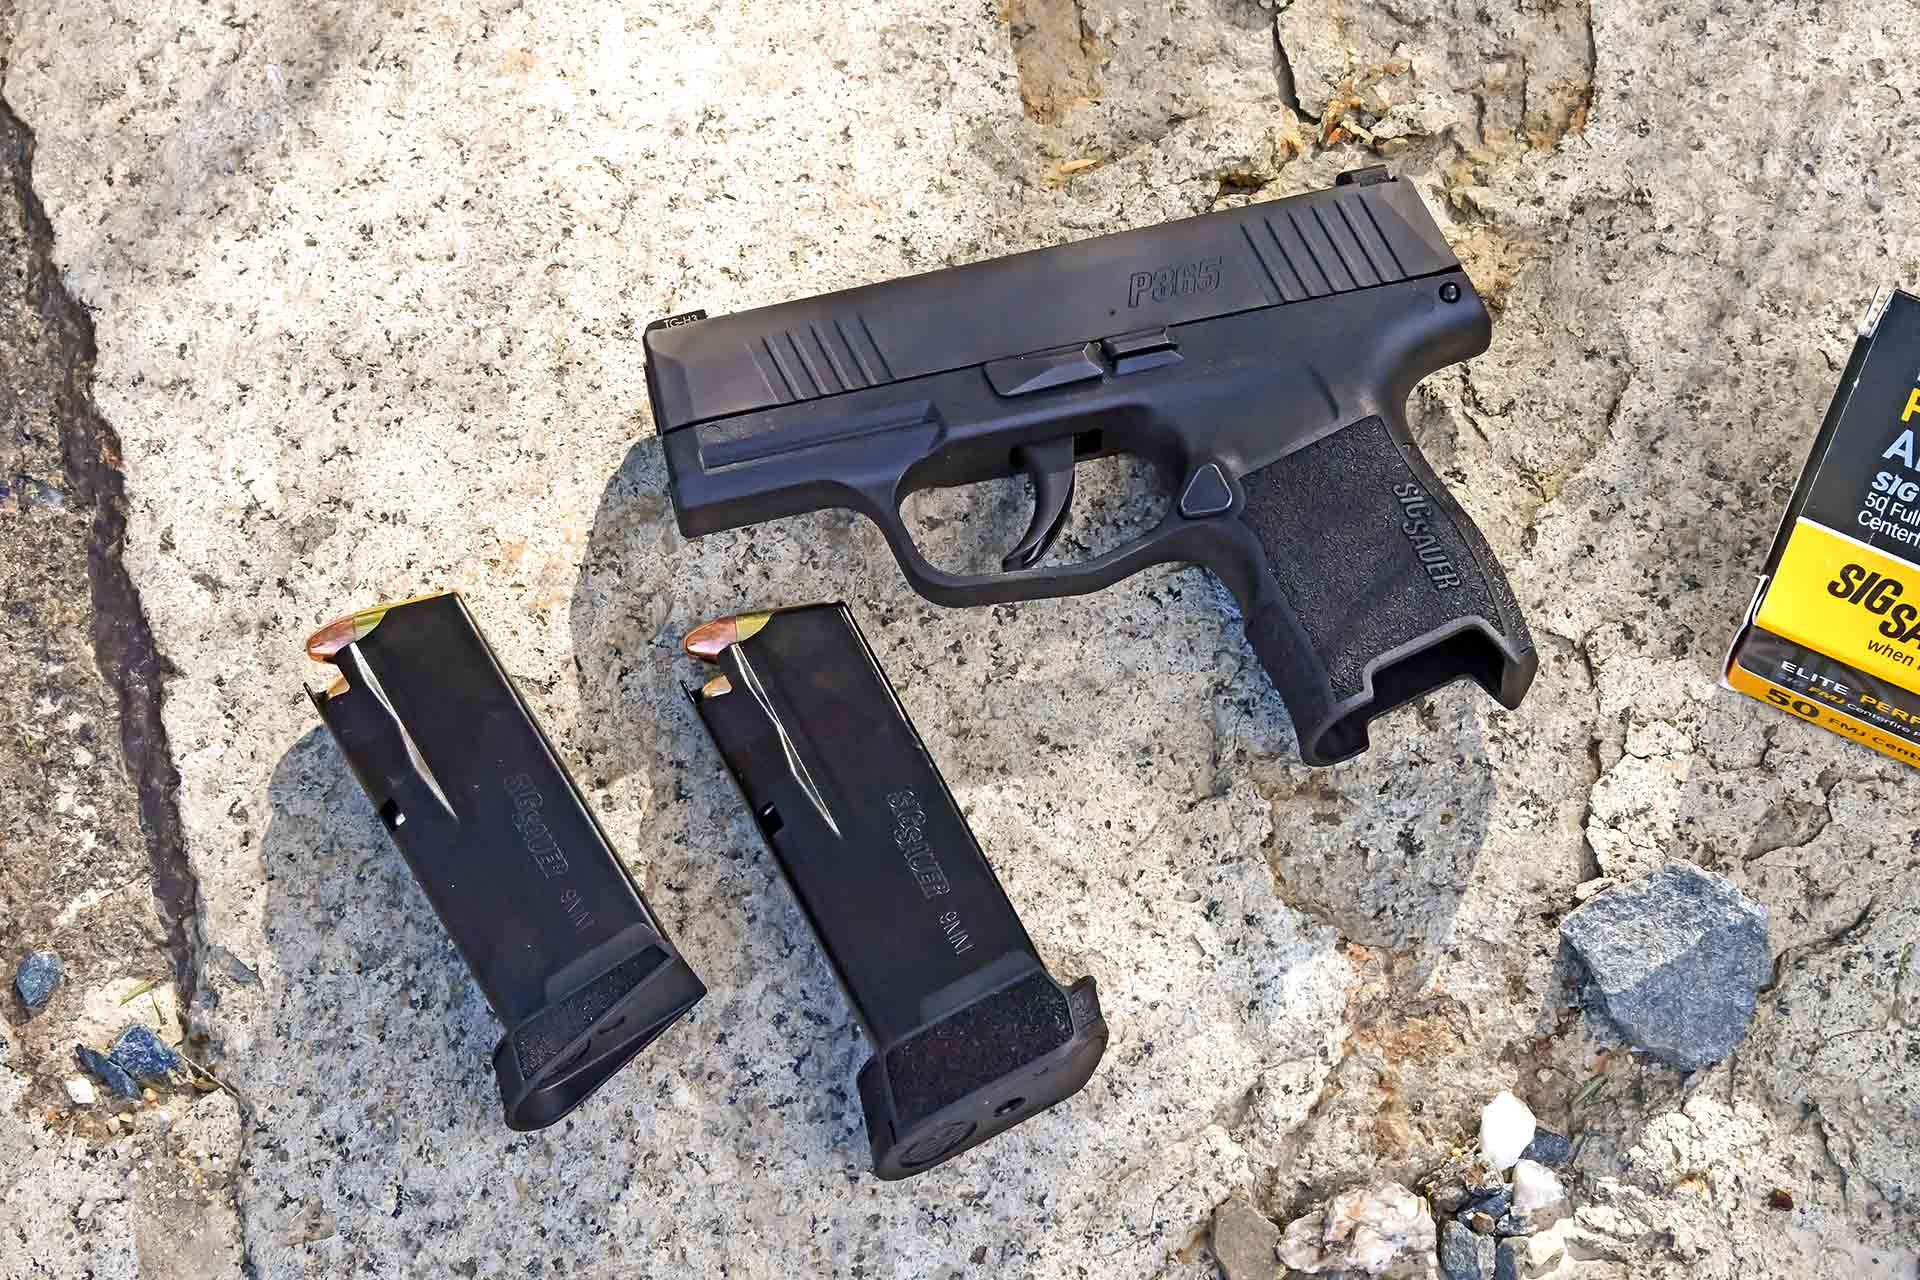 SIG Sauer sub compact P365 pistol in 9mm with two magazines